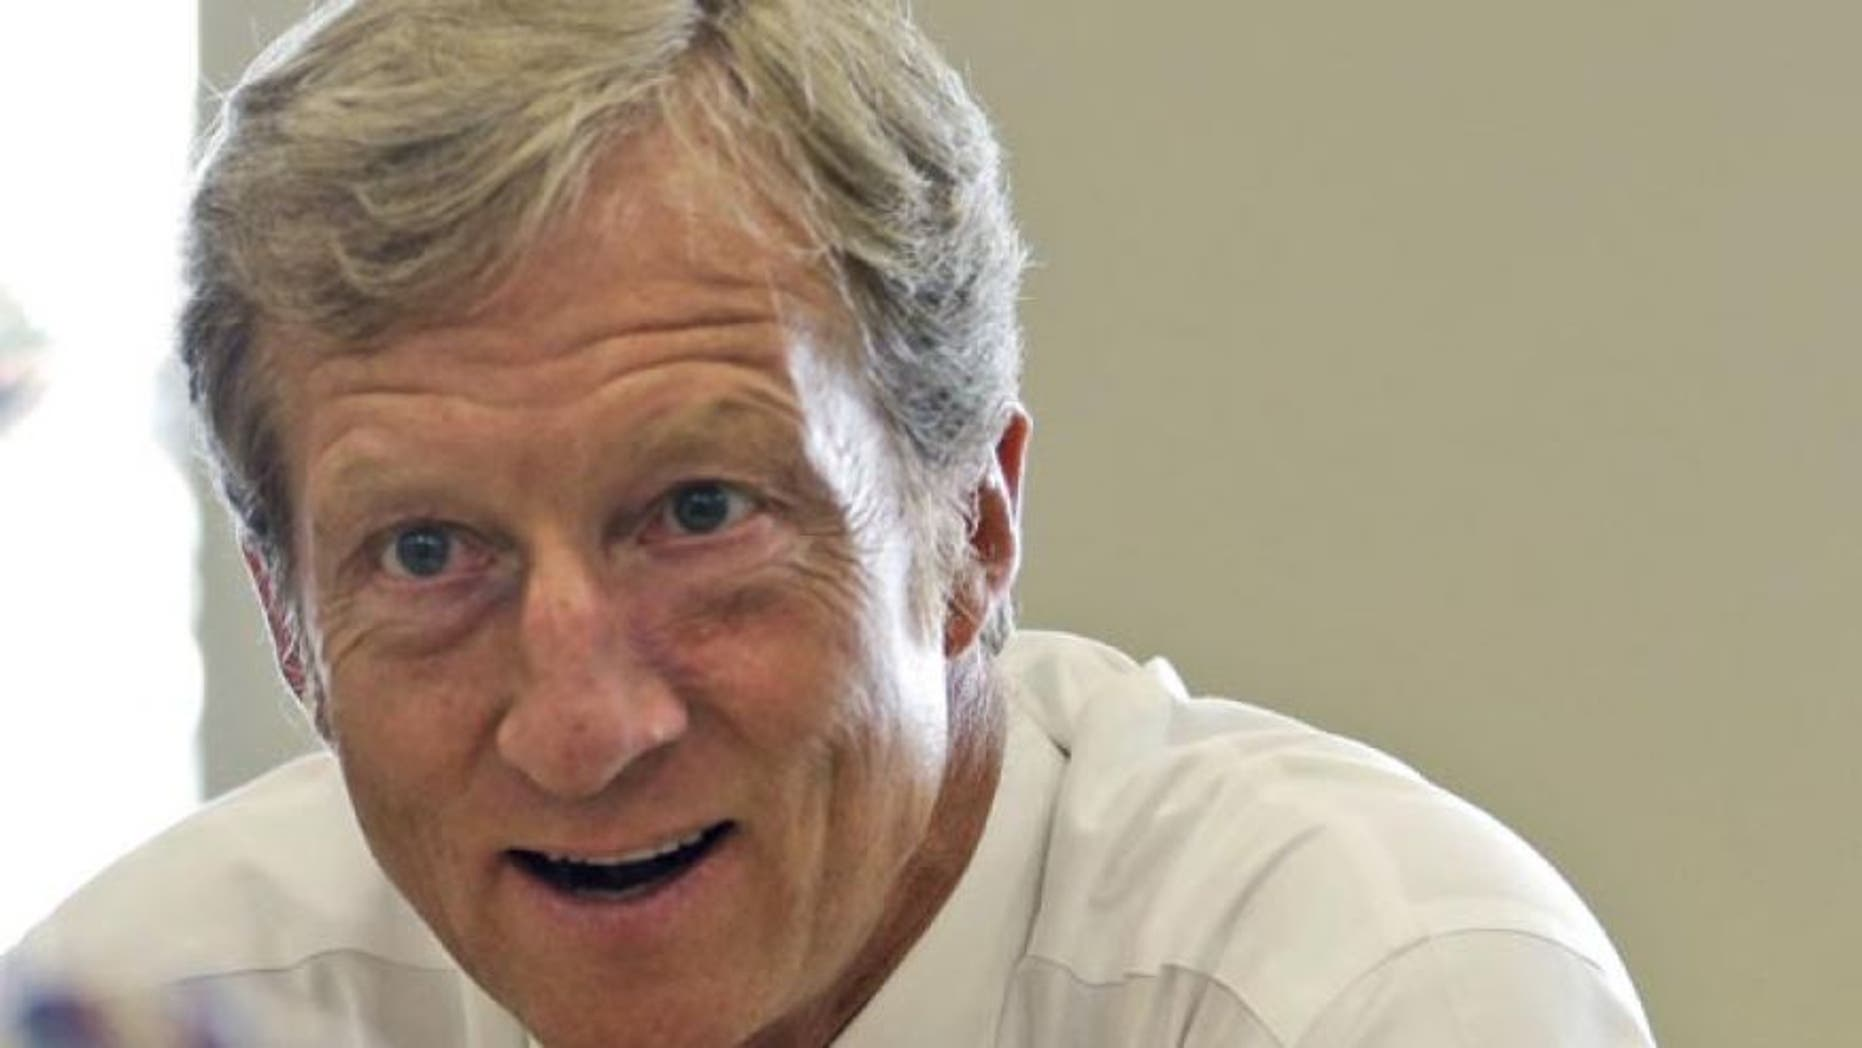 Sept. 25, 2013: In this file photo, businessman Tom Steyer talks during a meeting to announce the launch of a group called Virginians for Clean Government at Virginia Commonwealth University in Richmond, Va. (AP)